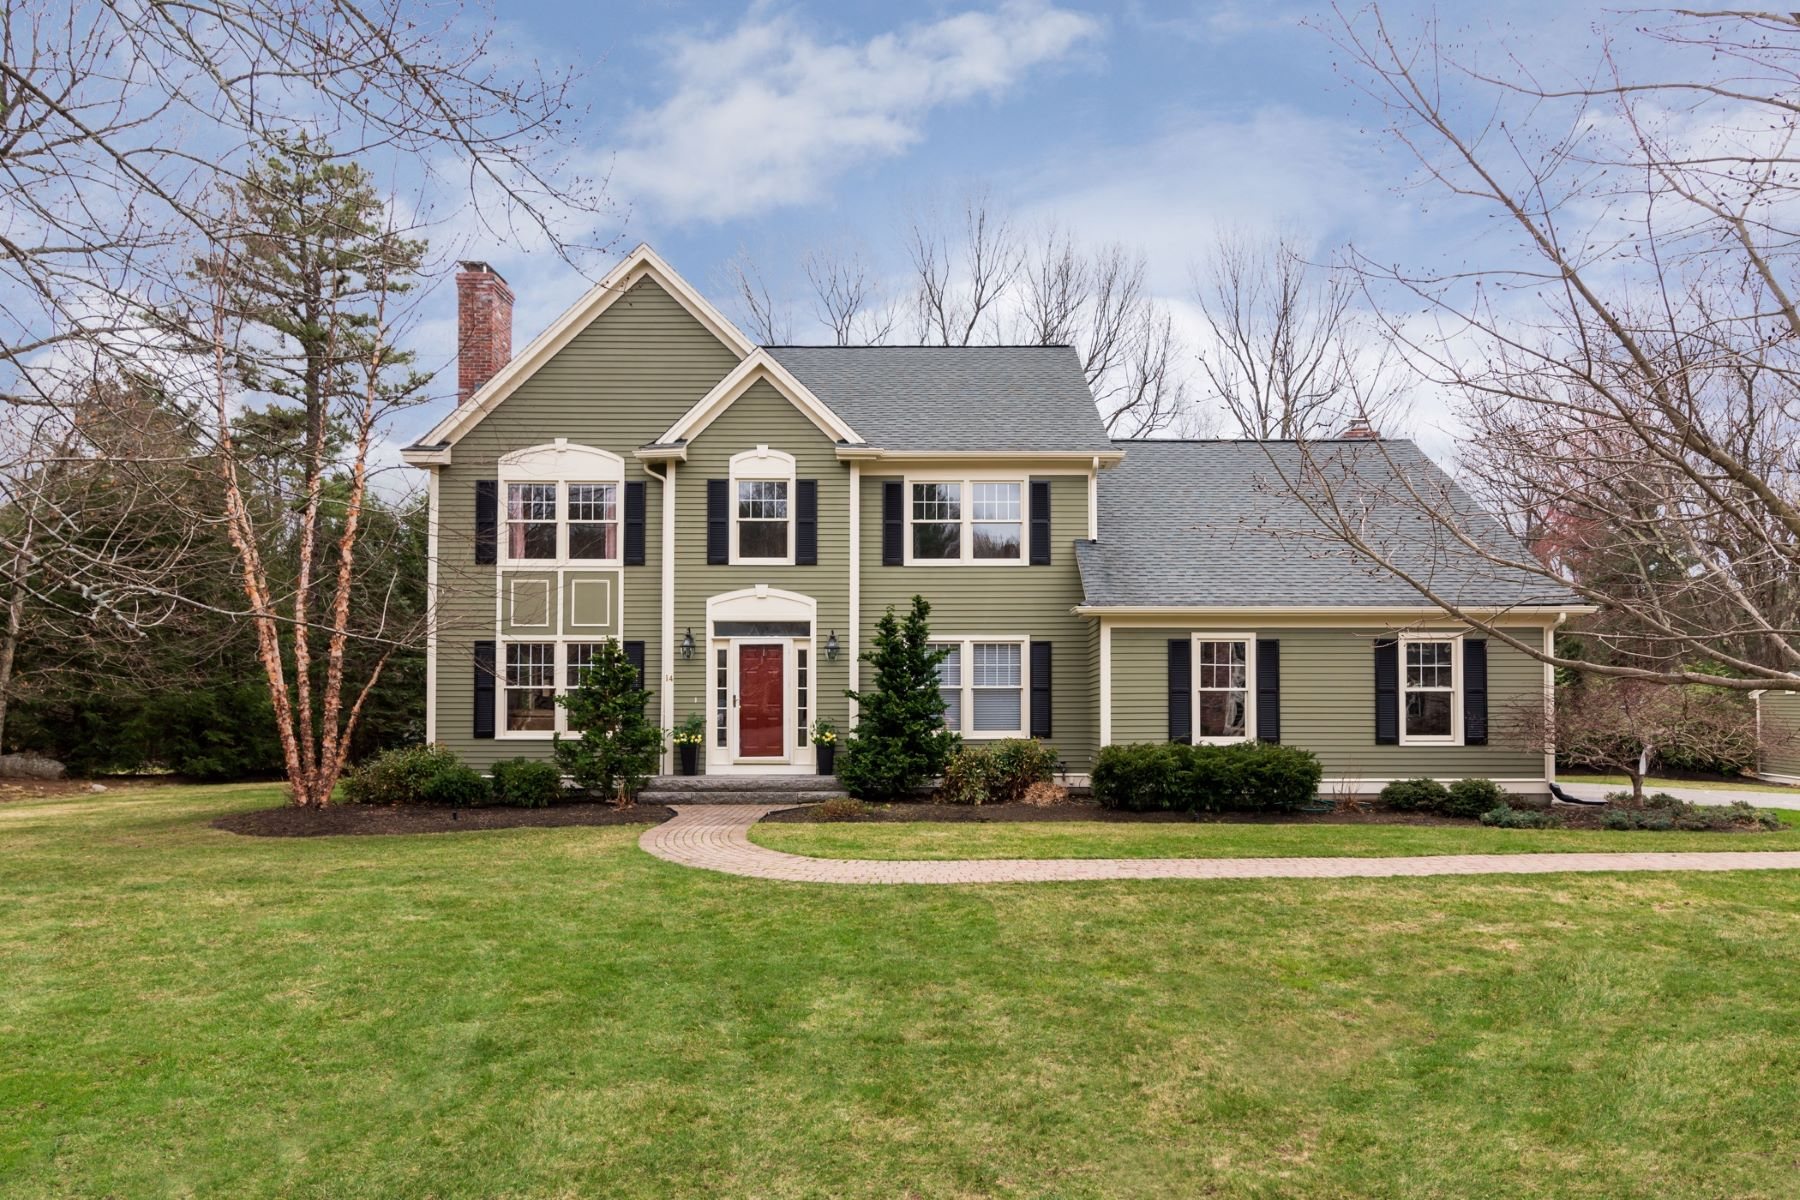 Single Family Home for Active at 14 Copeland Drive, Bedford 14 Copeland Dr Bedford, Massachusetts 01730 United States